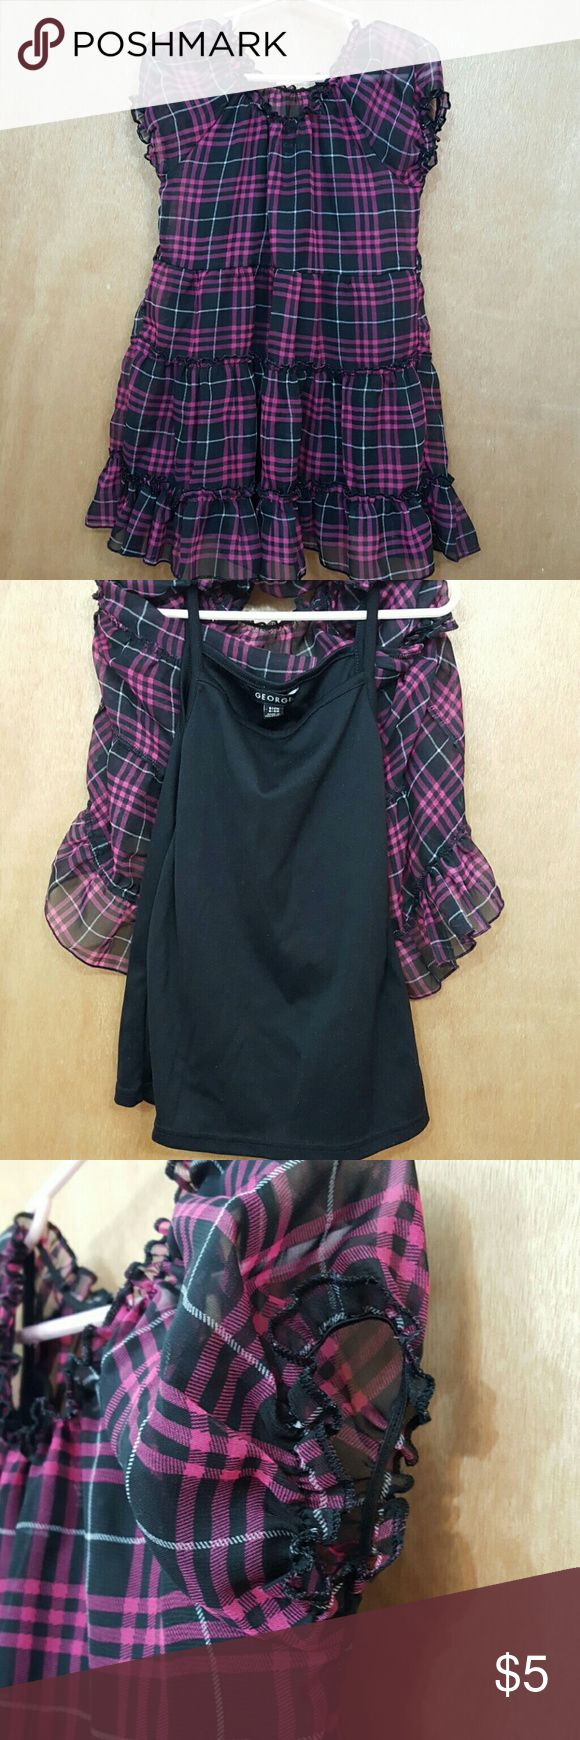 Girls 2-Layered Pink and Black Plaid shirt Size 6x Pre-loved girls pink and black plaid shirt in a size 6x.  The inner layer is a black tank top and the top layer is see-thru.  Such a cute piece. George Shirts & Tops Blouses